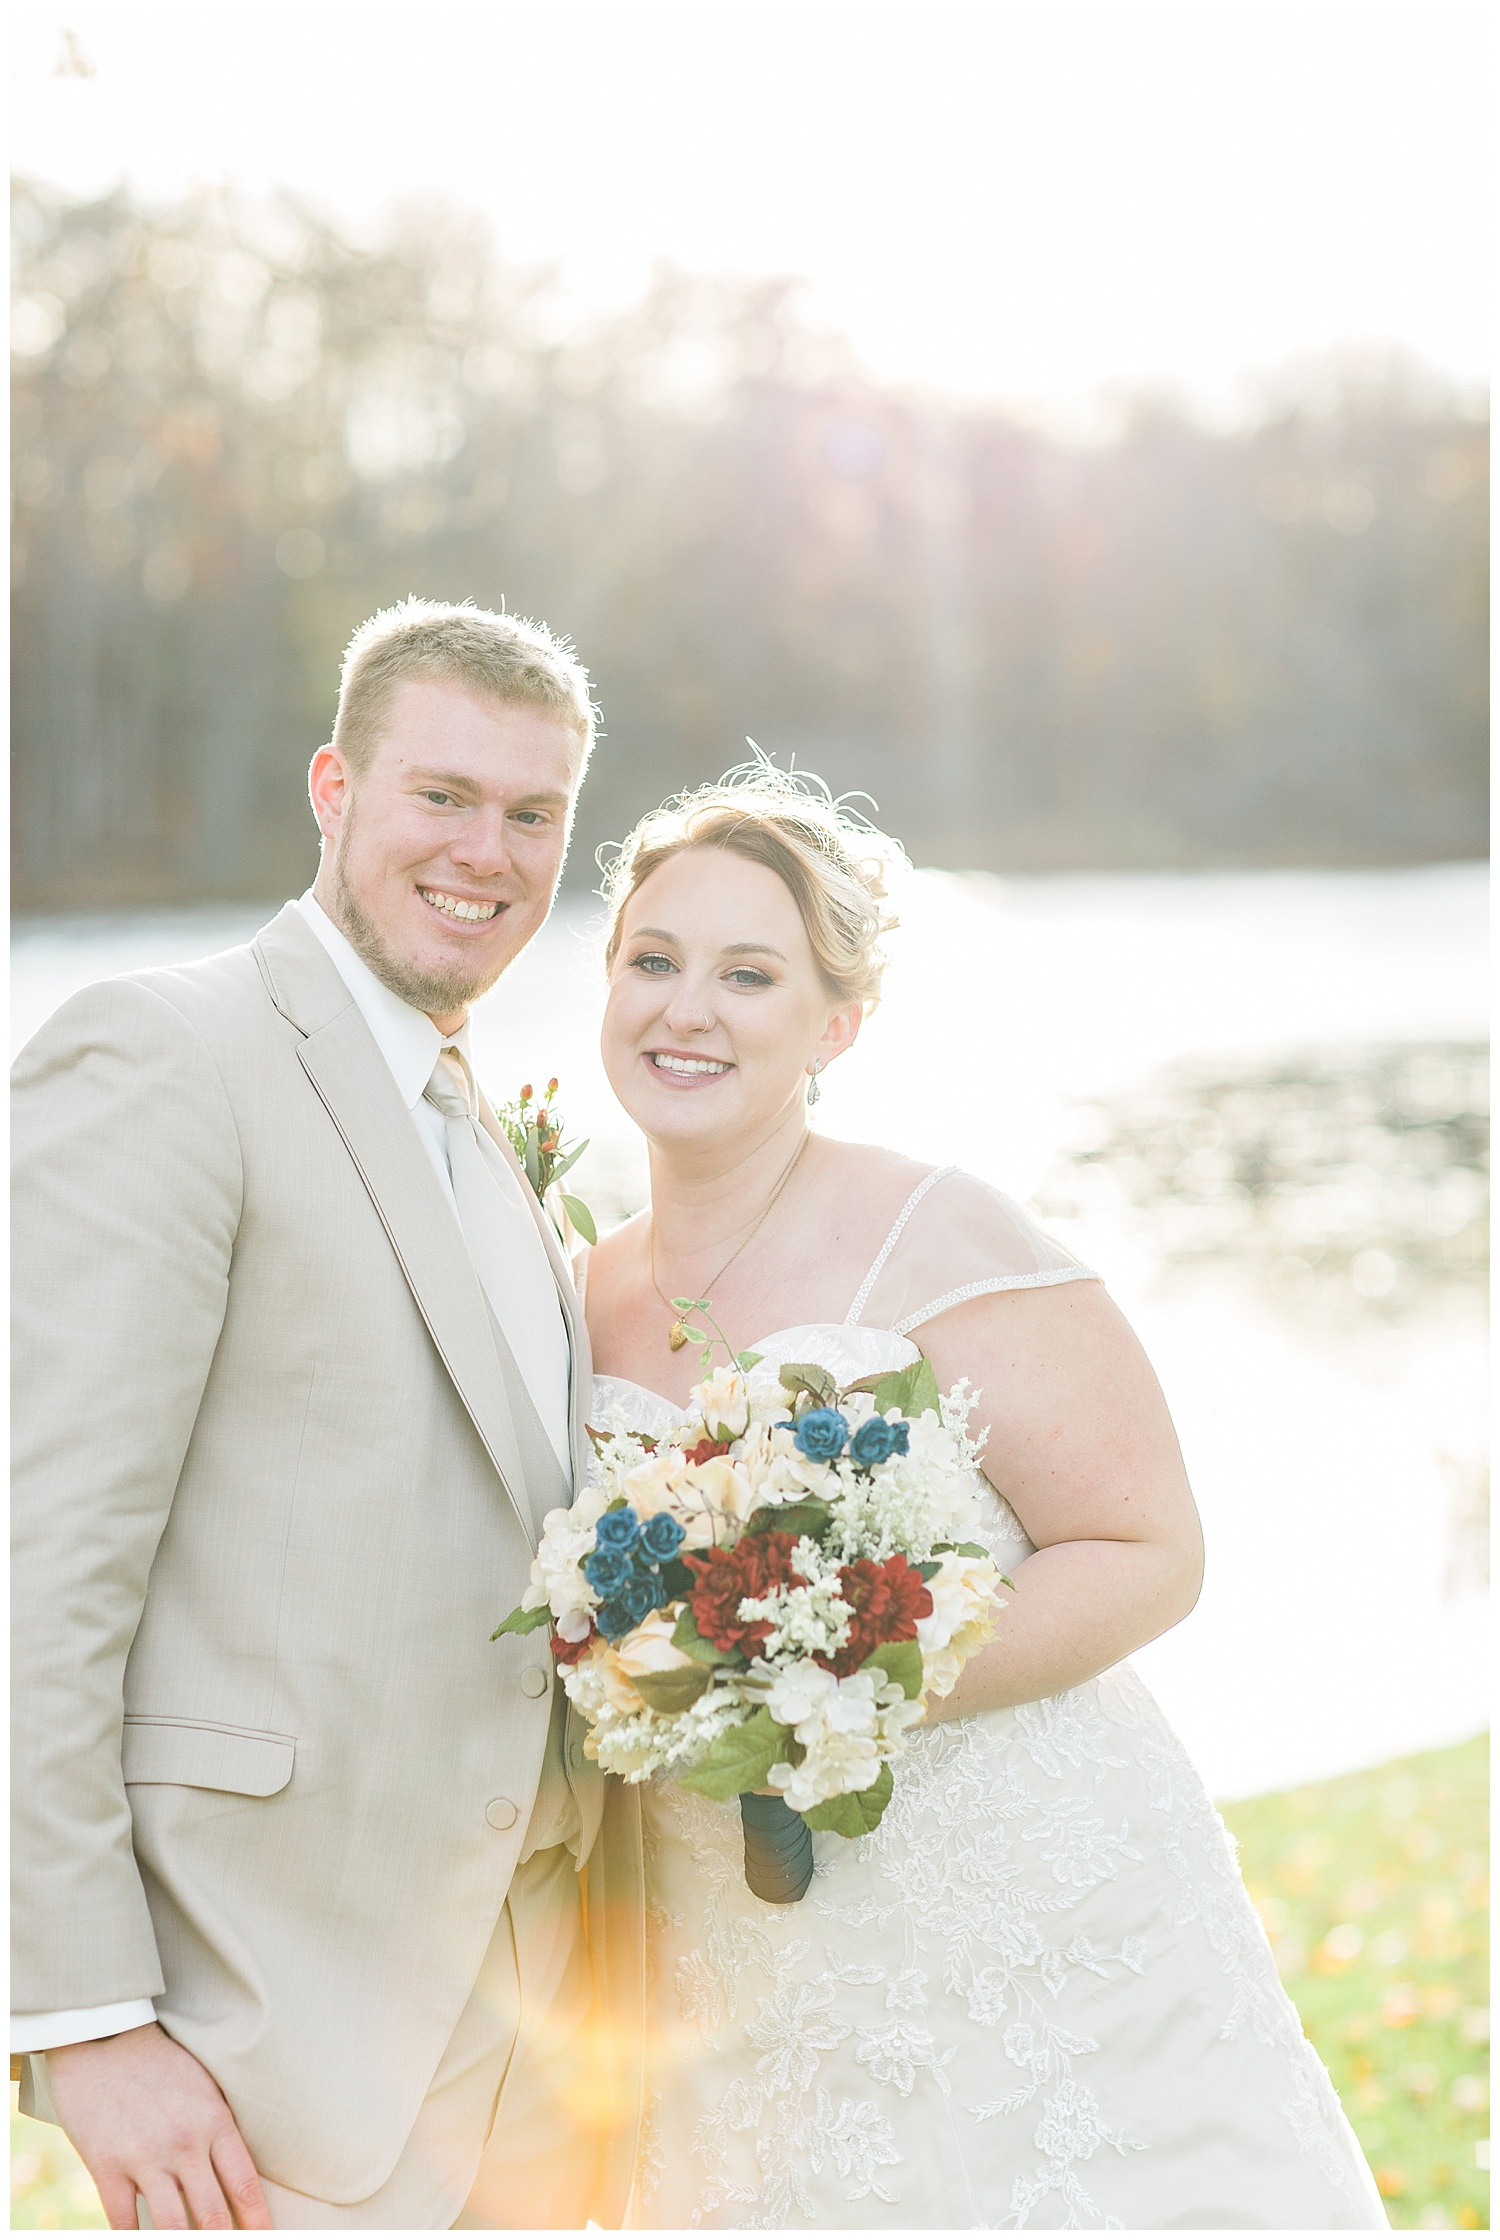 Longwell Wedding - Lass and Beau - Hickory Ridge -869_Buffalo wedding photography.jpg